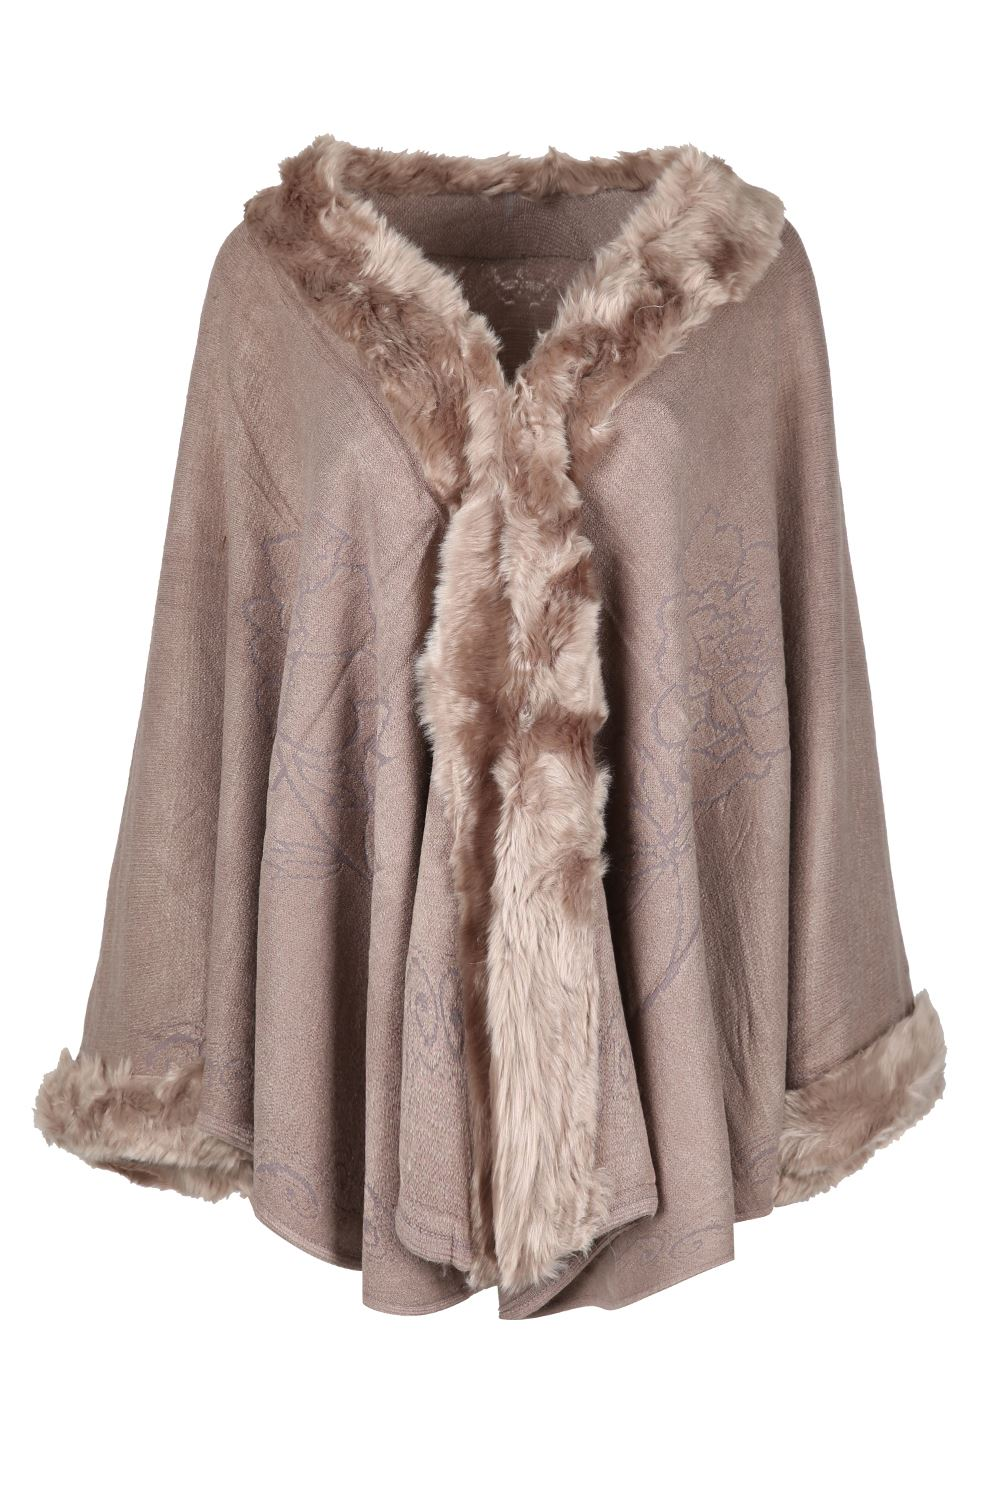 Fur wraps and shawls for women 2019